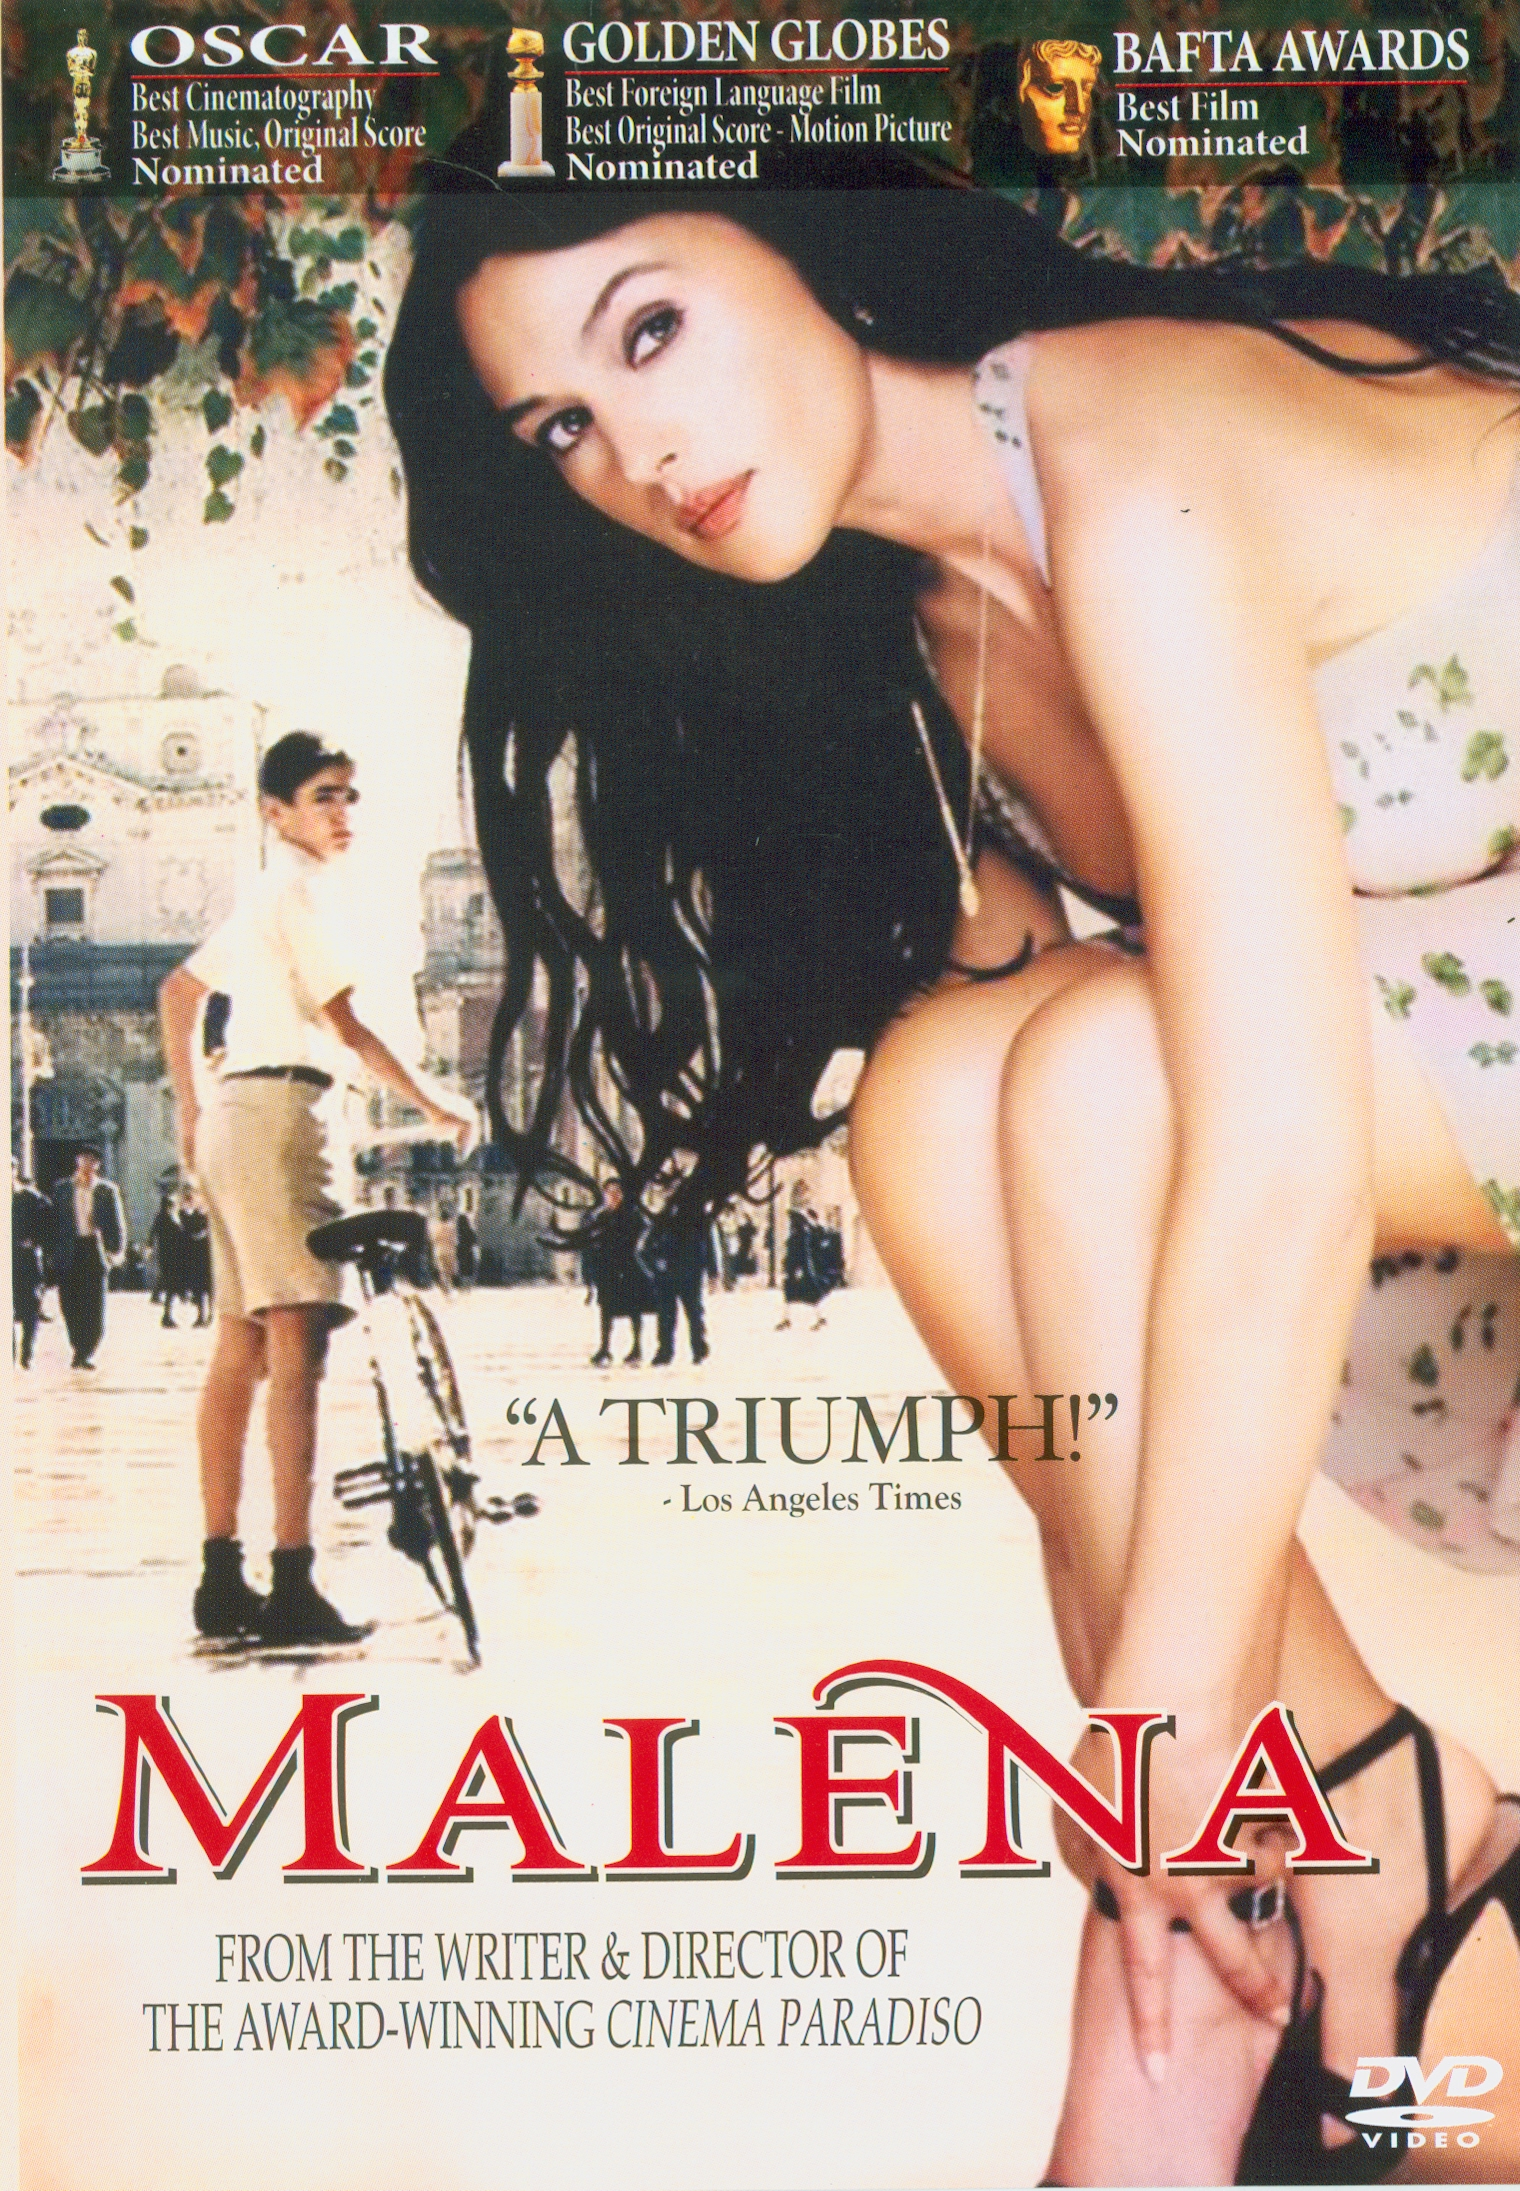 Malena[videorecording] /Miramax Films and Medusa Film present a Medusa Film/Miramax Films production ; a film by Giuseppe Tornatore ; written and directed by Giuseppe Tornatore ; producers, Harvey Weinstein, Carlo Bernasconi||เมลีน่า ผู้หญิงสะกดโลก